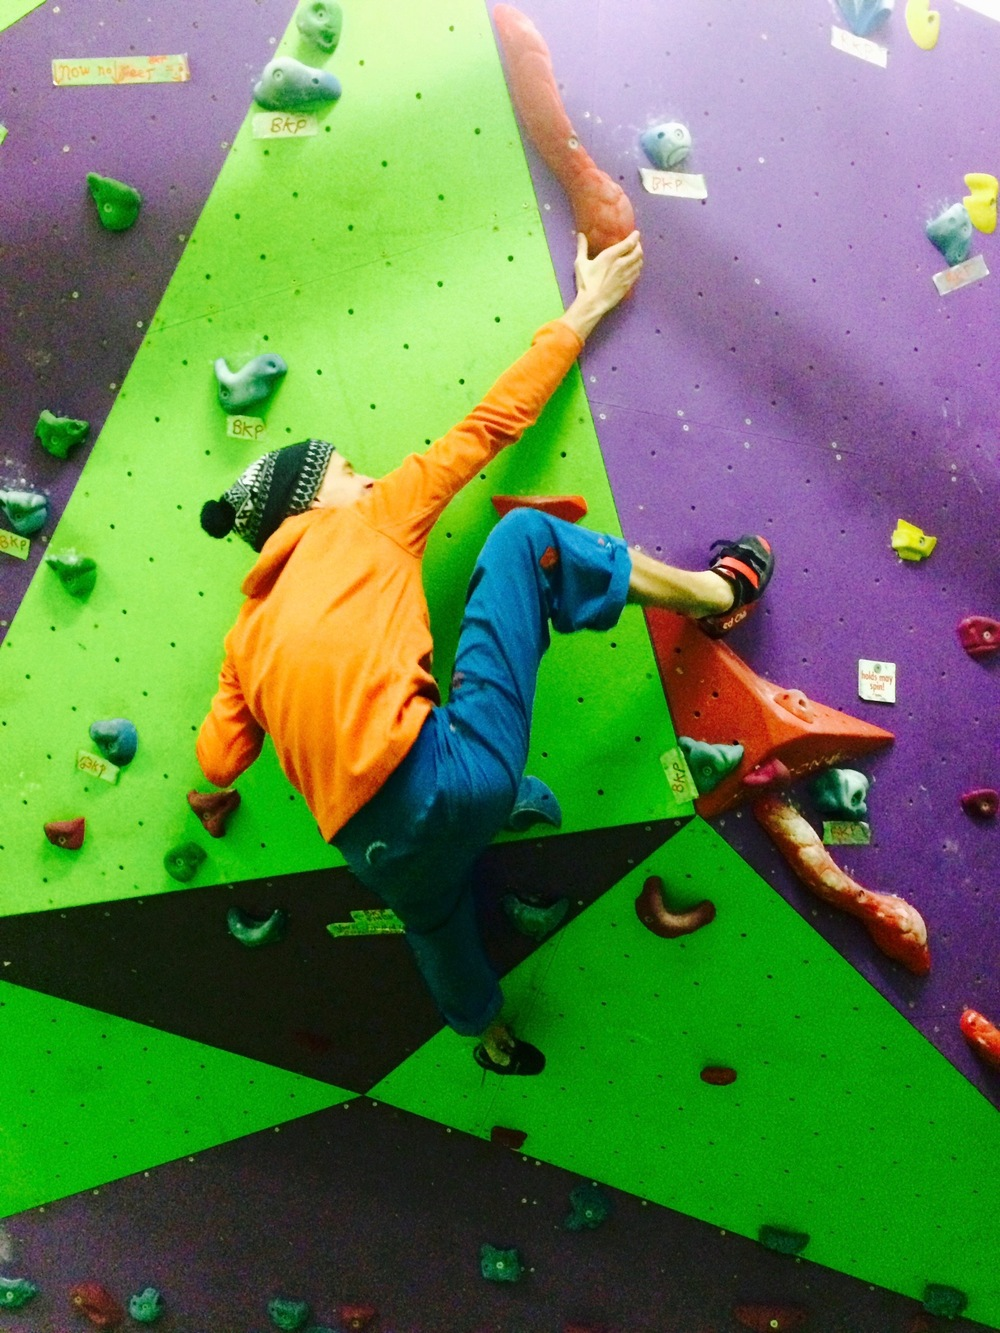 Classic evening training session at the SDC wall. Photo: Ian M